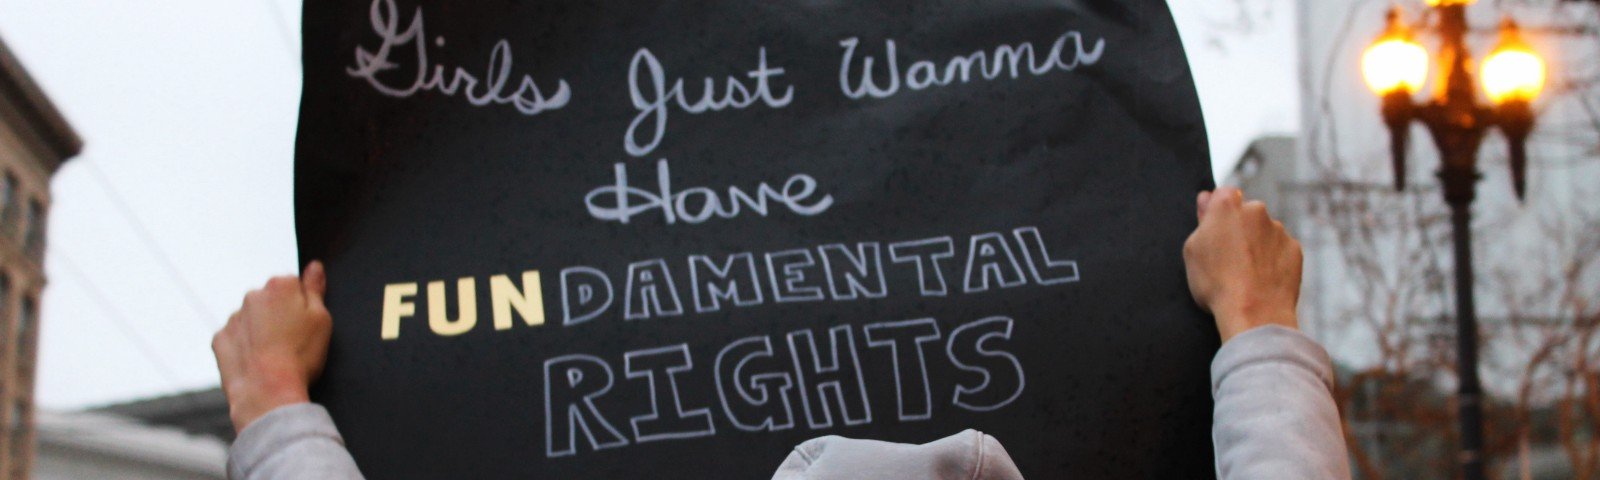 girls just wanna have FUNdamental rights sign